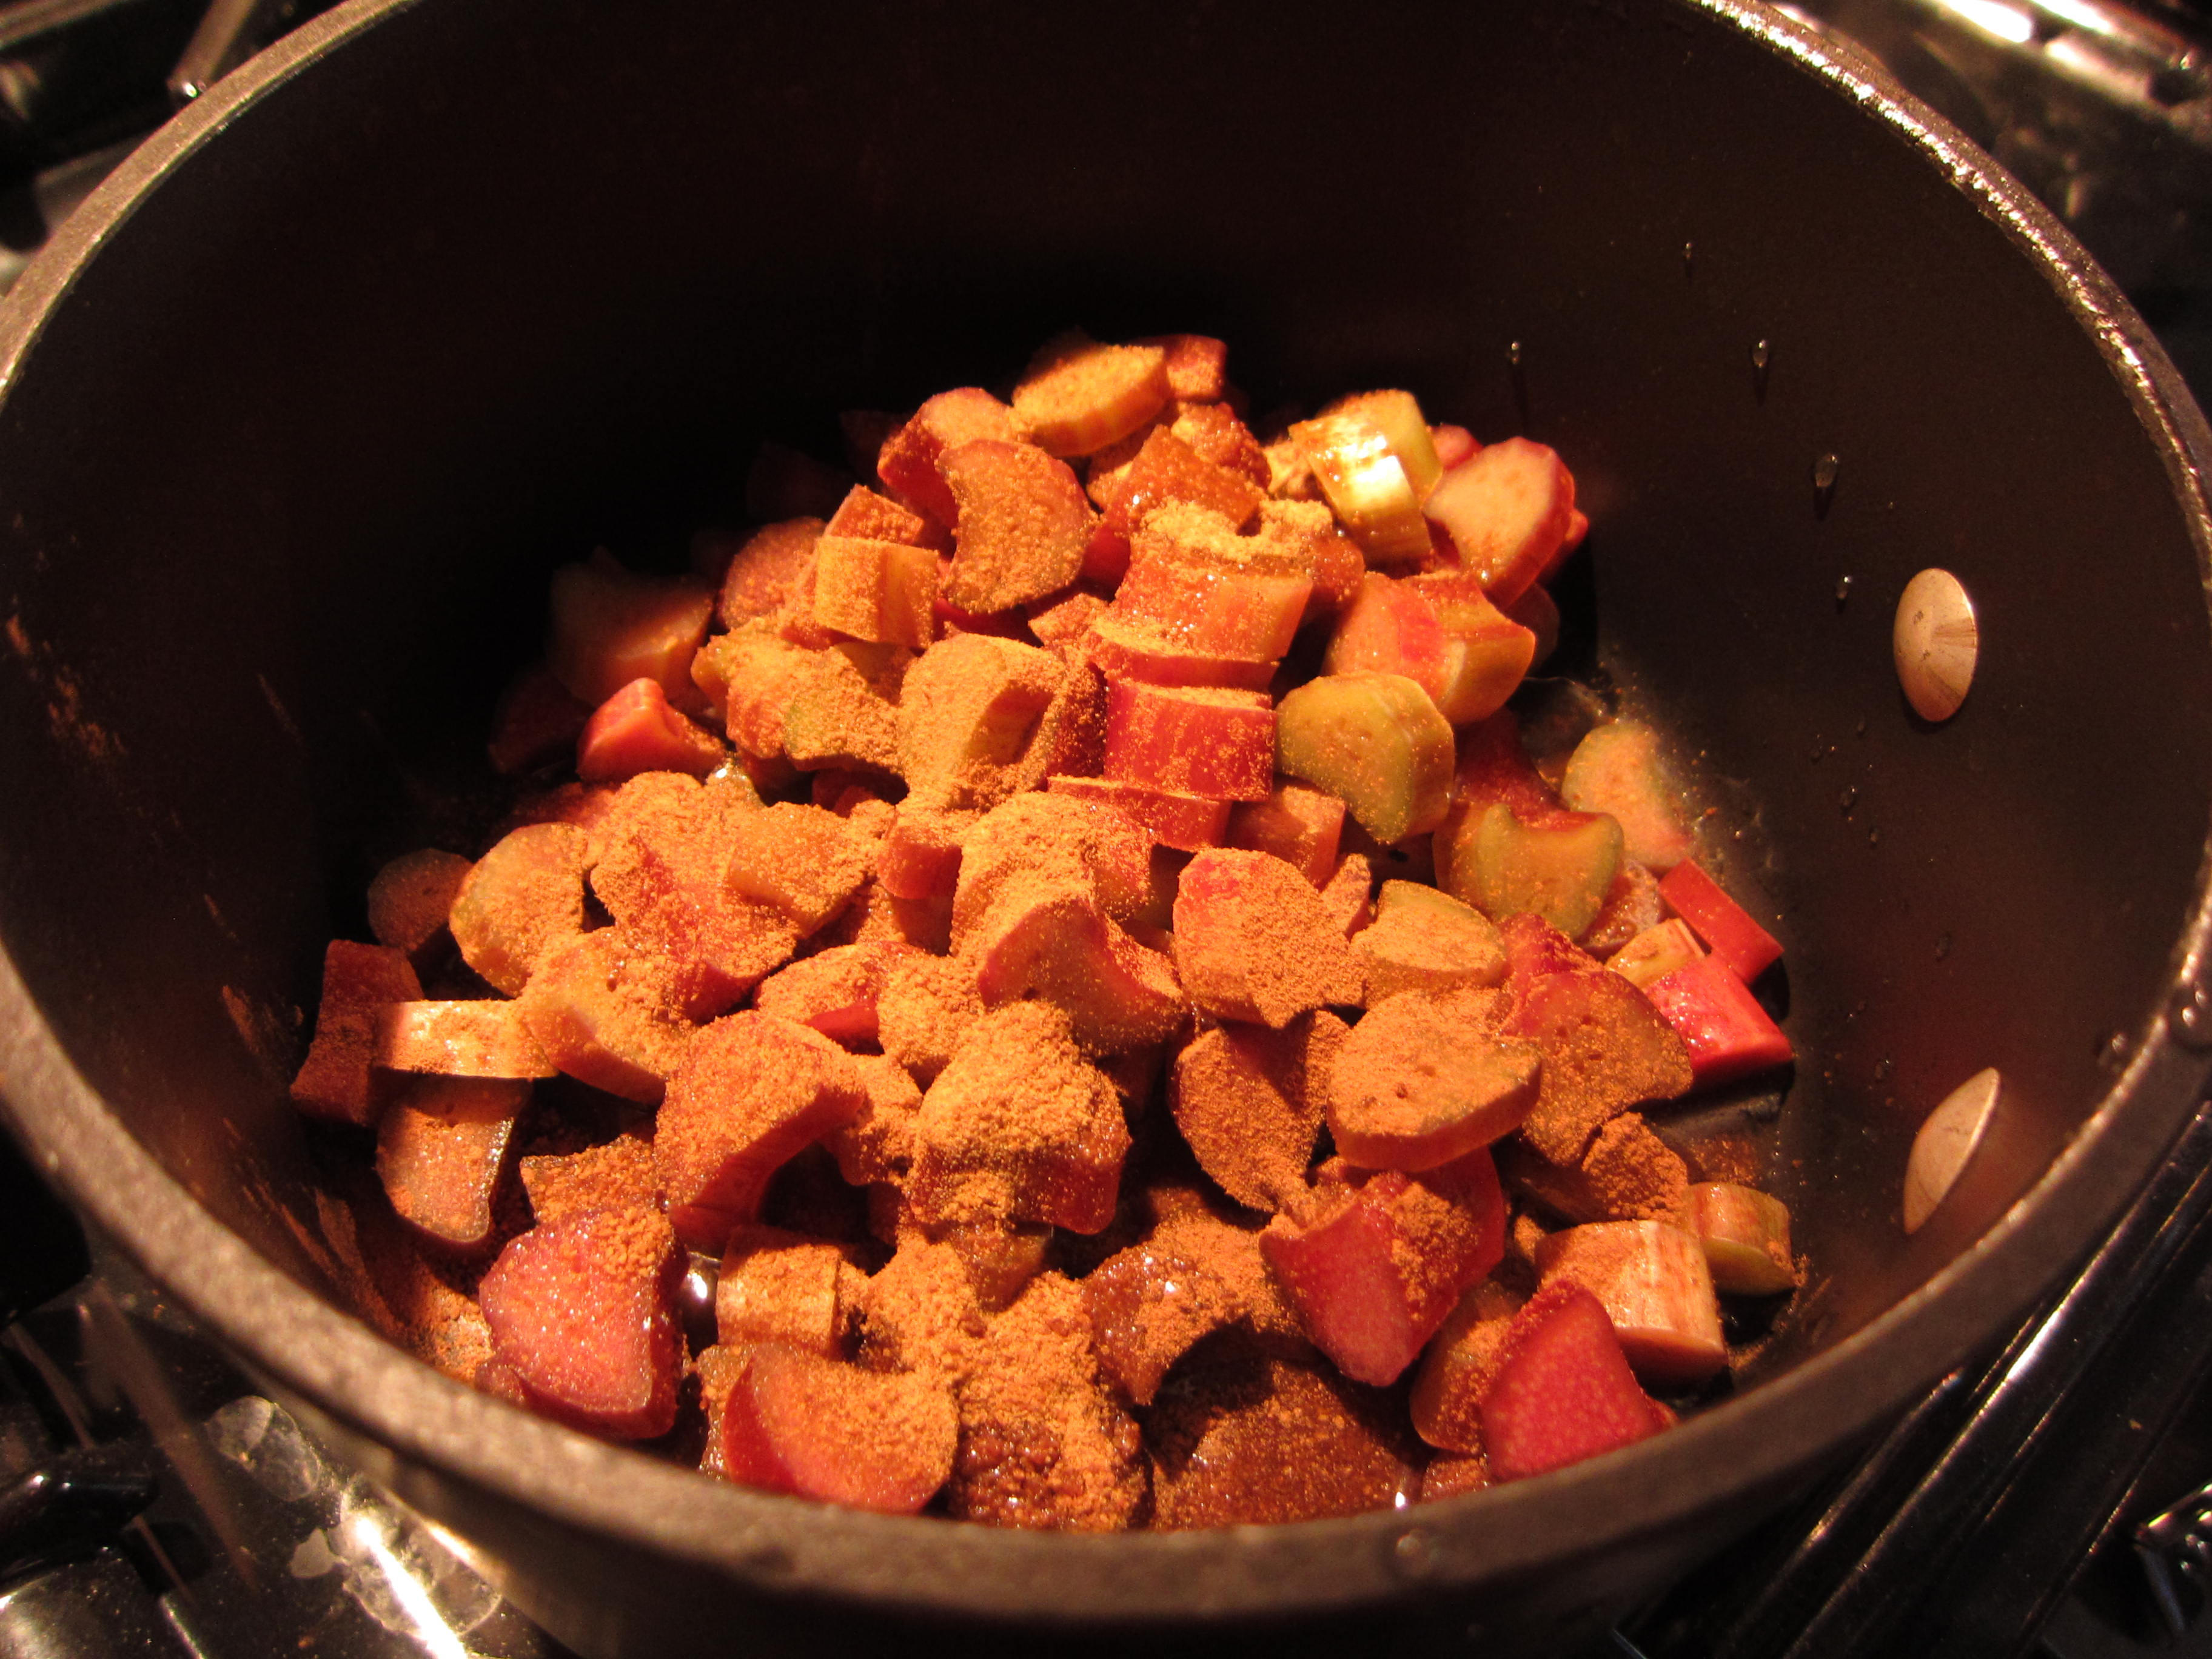 Put all ingredients in a saucepan over medium to low heat.